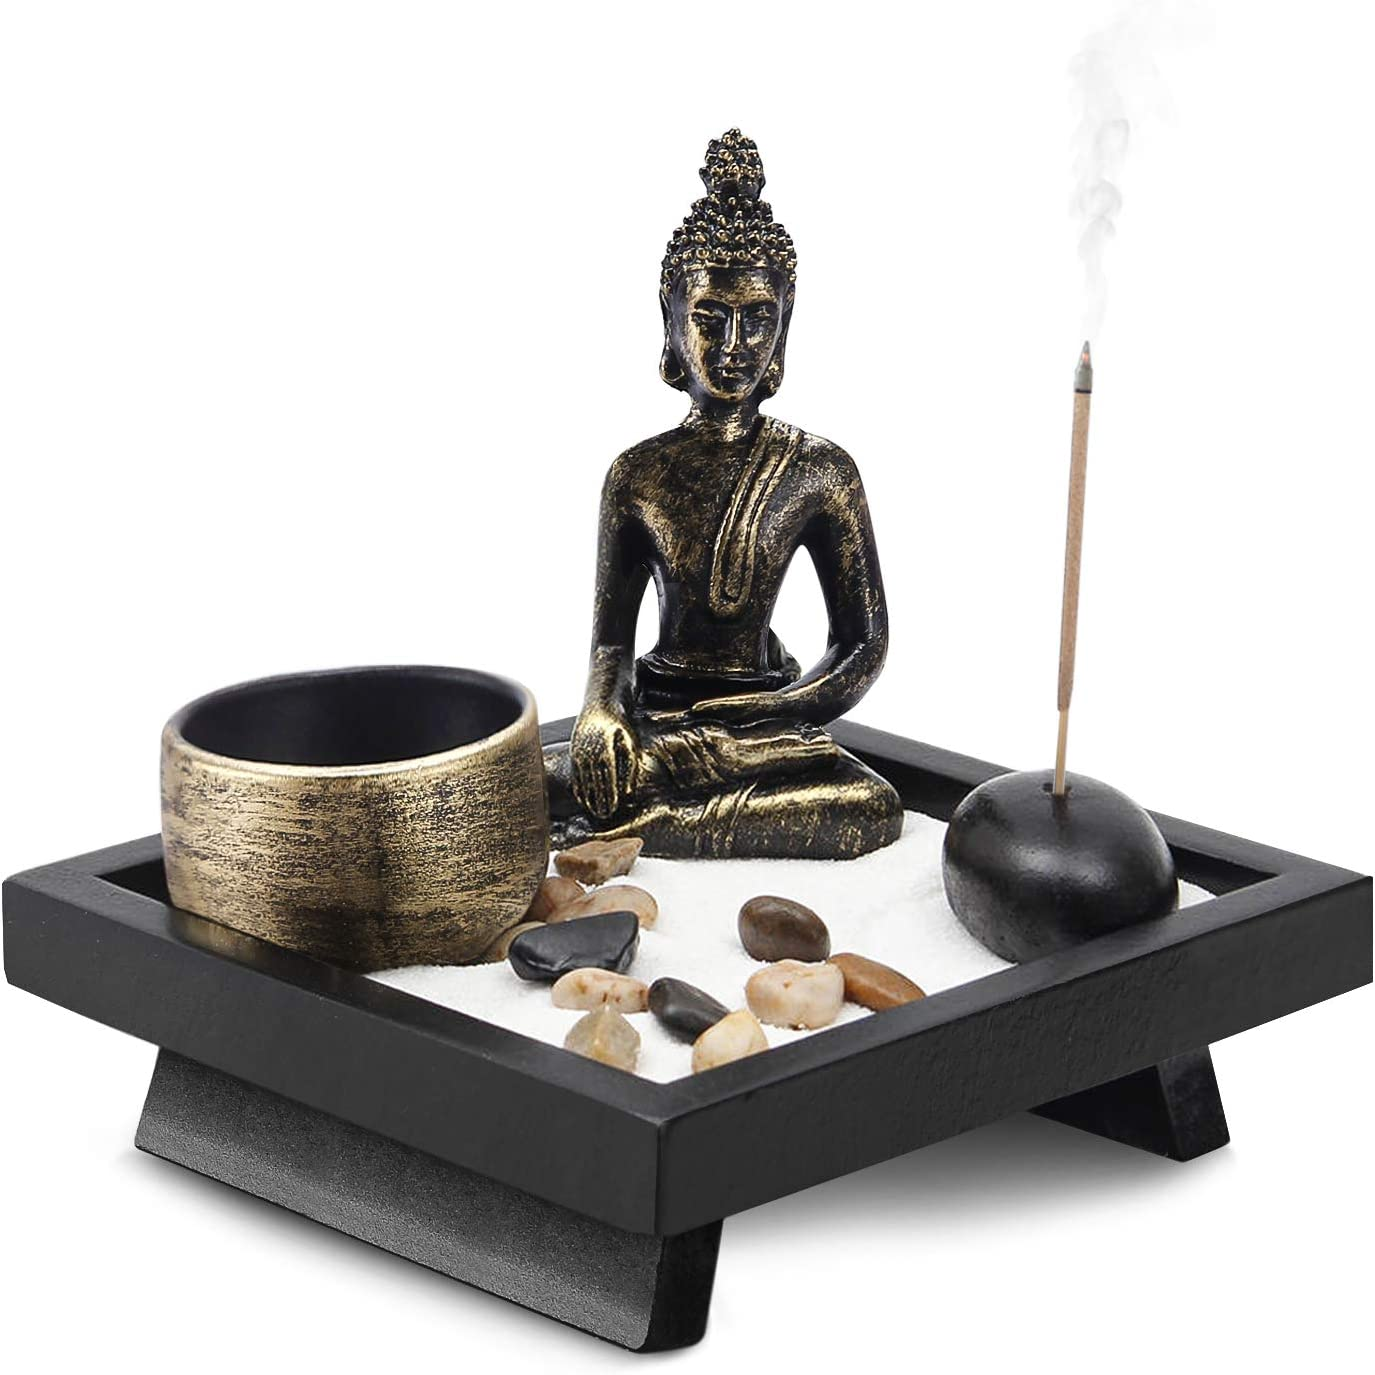 Flexzion Zen Garden Mini Small Japanese Rock Garden Raked Sand Meditation Decor w/Buddha Statue Incense Candle Holder Rake Natural Stones Fine Craft Sand, for Relaxation Office Home Desk, Bronze